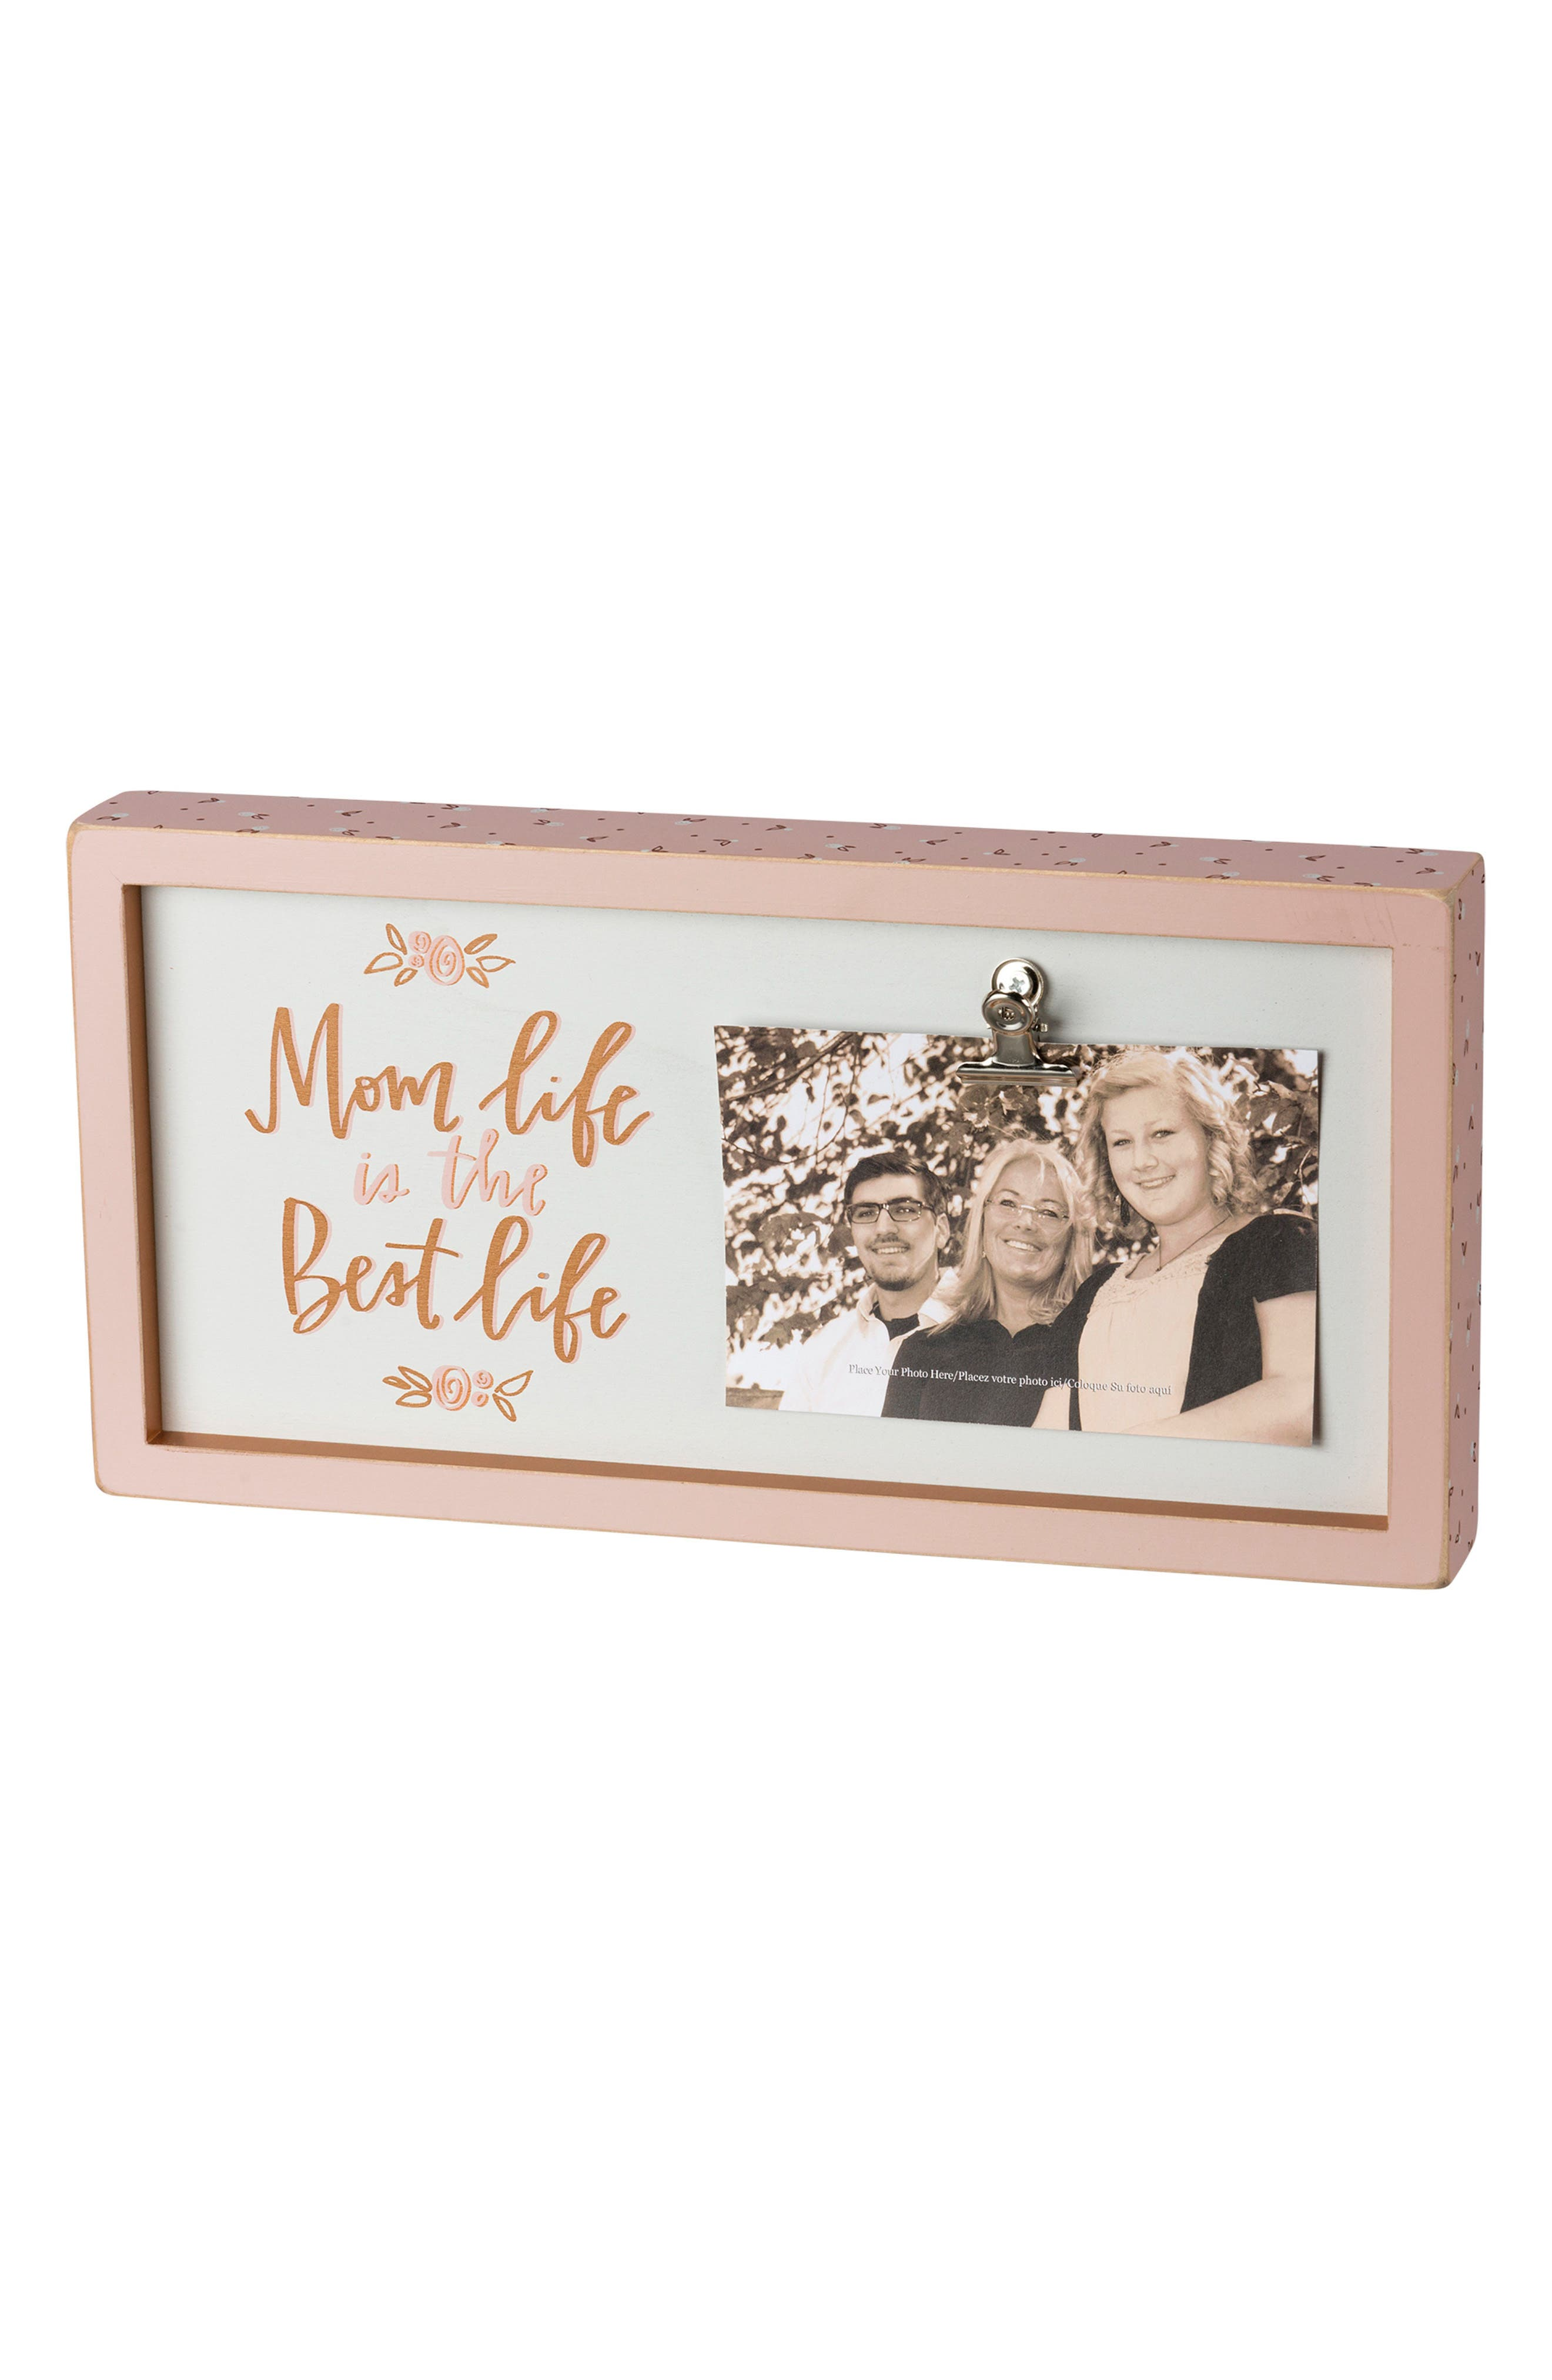 Primitives by Kathy Mom Life Inset Box Picture Frame